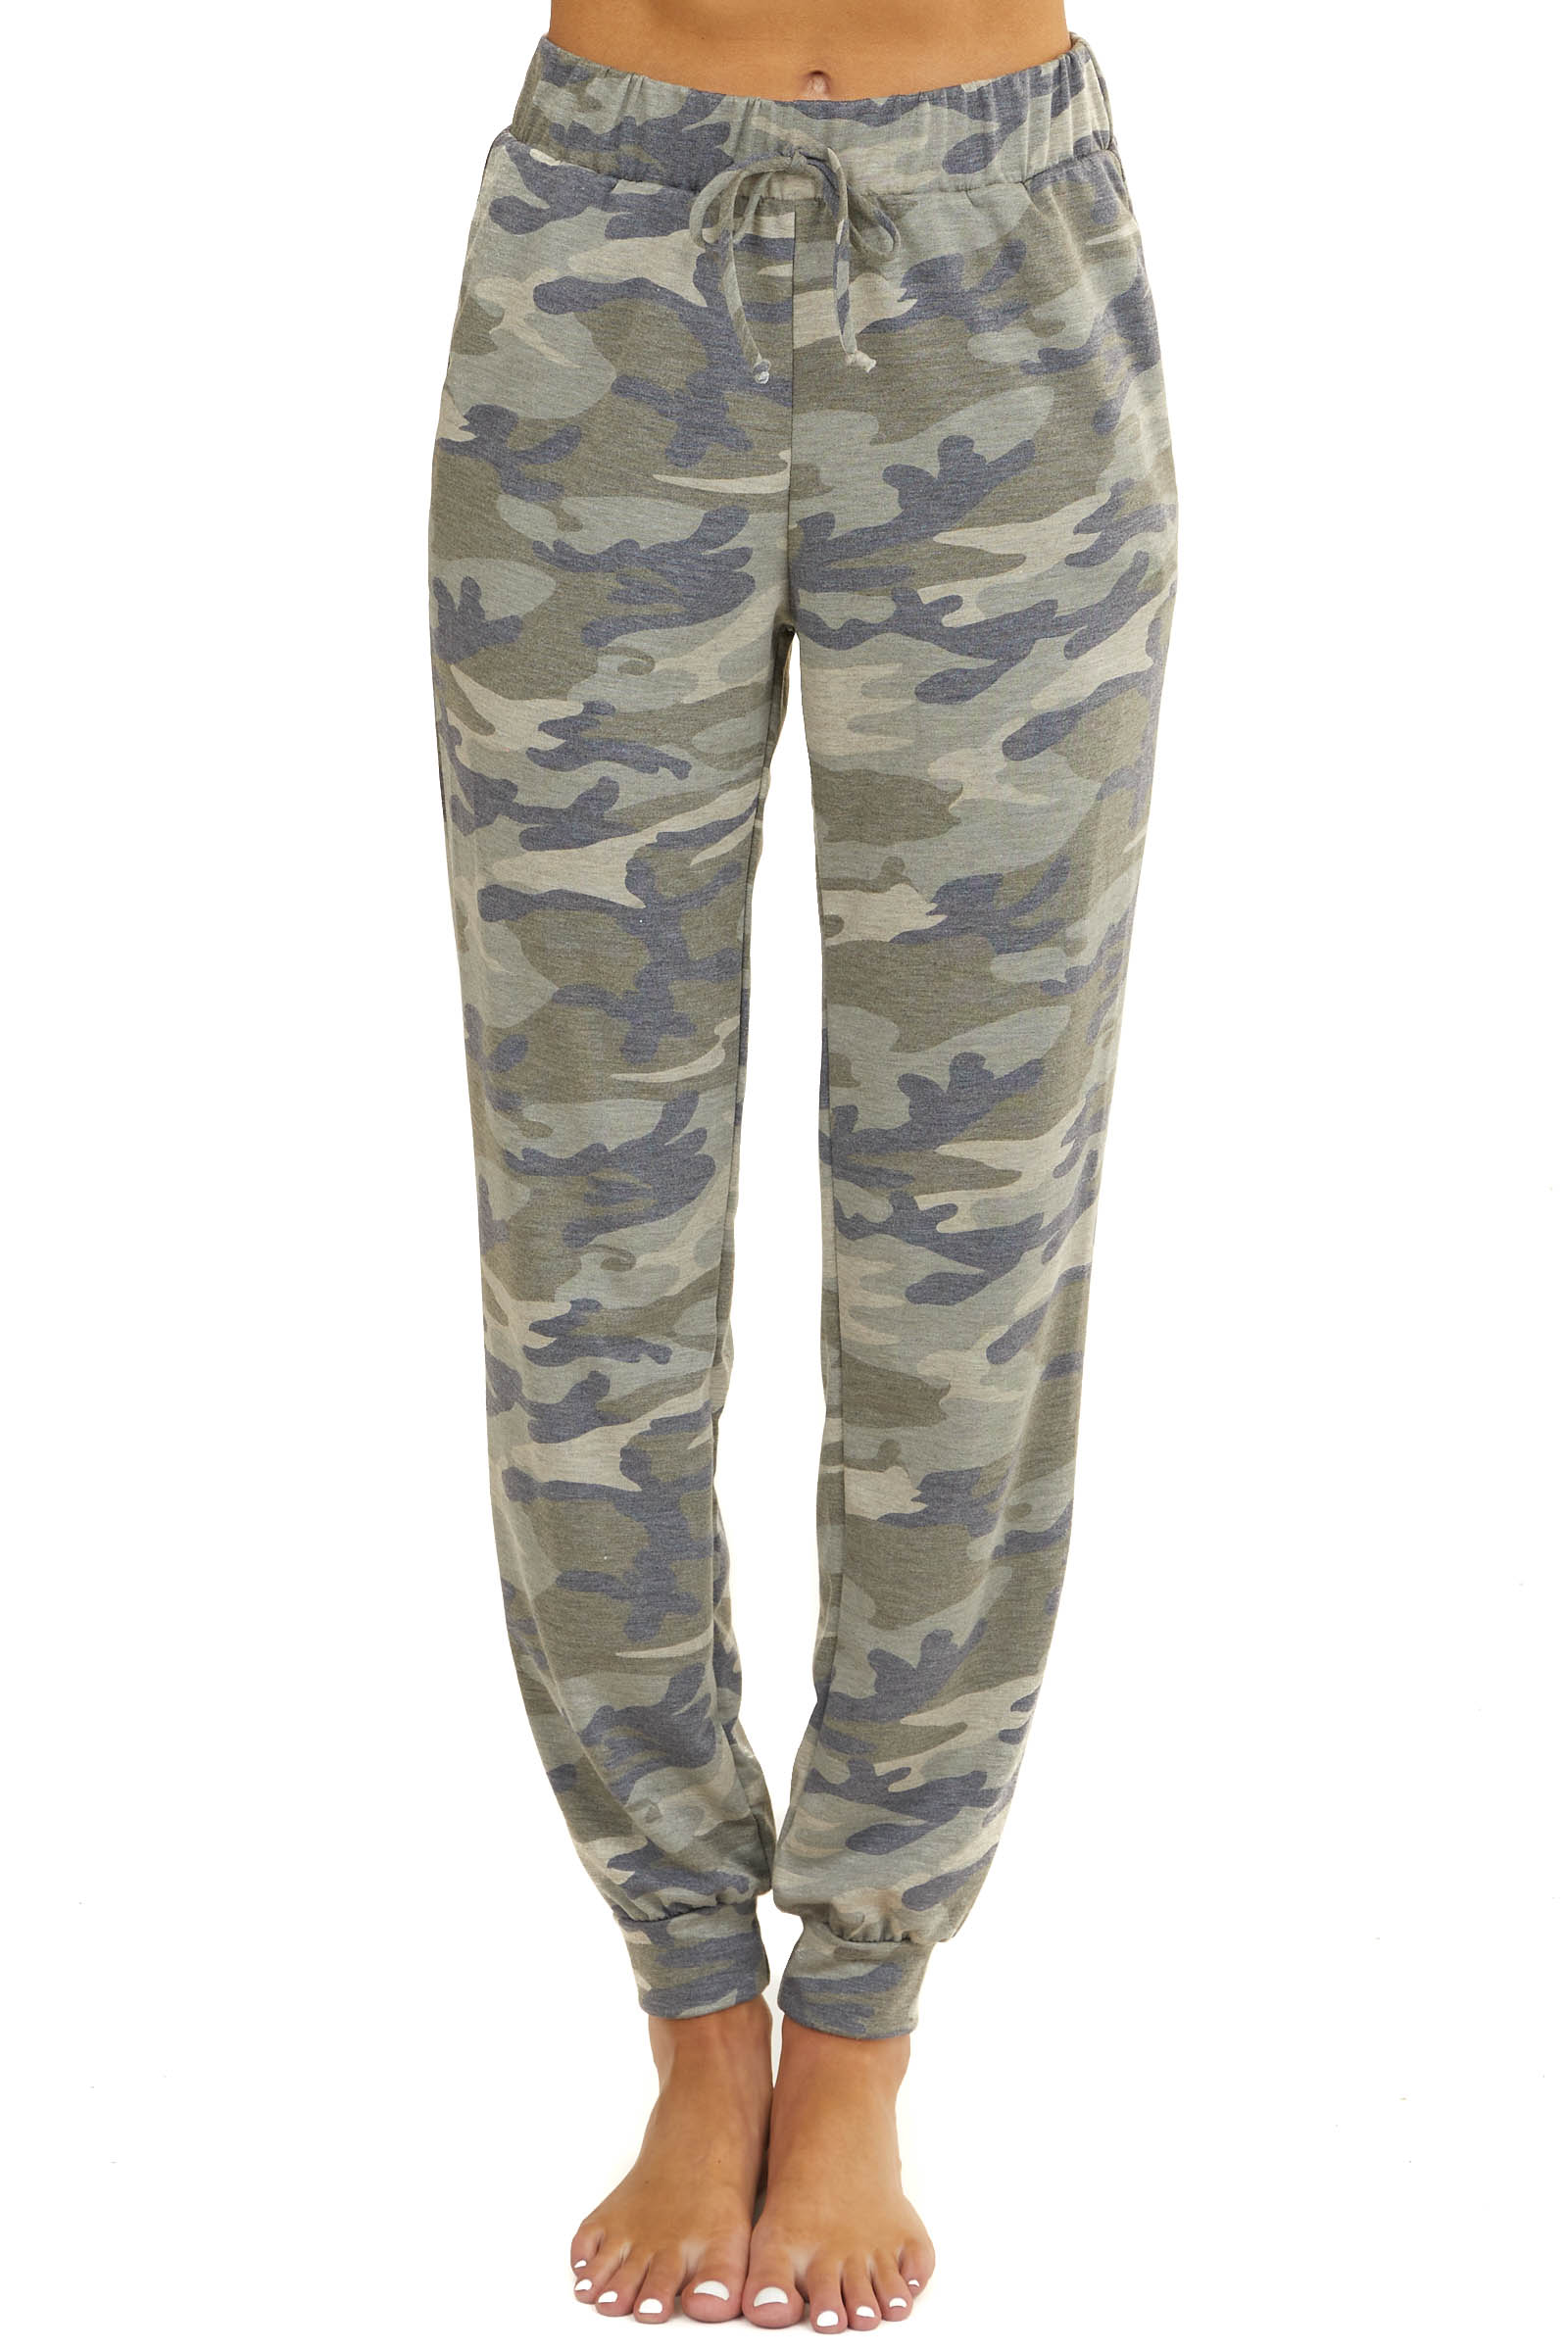 Olive Green Camo Print Jogger Sweatpants with Pockets